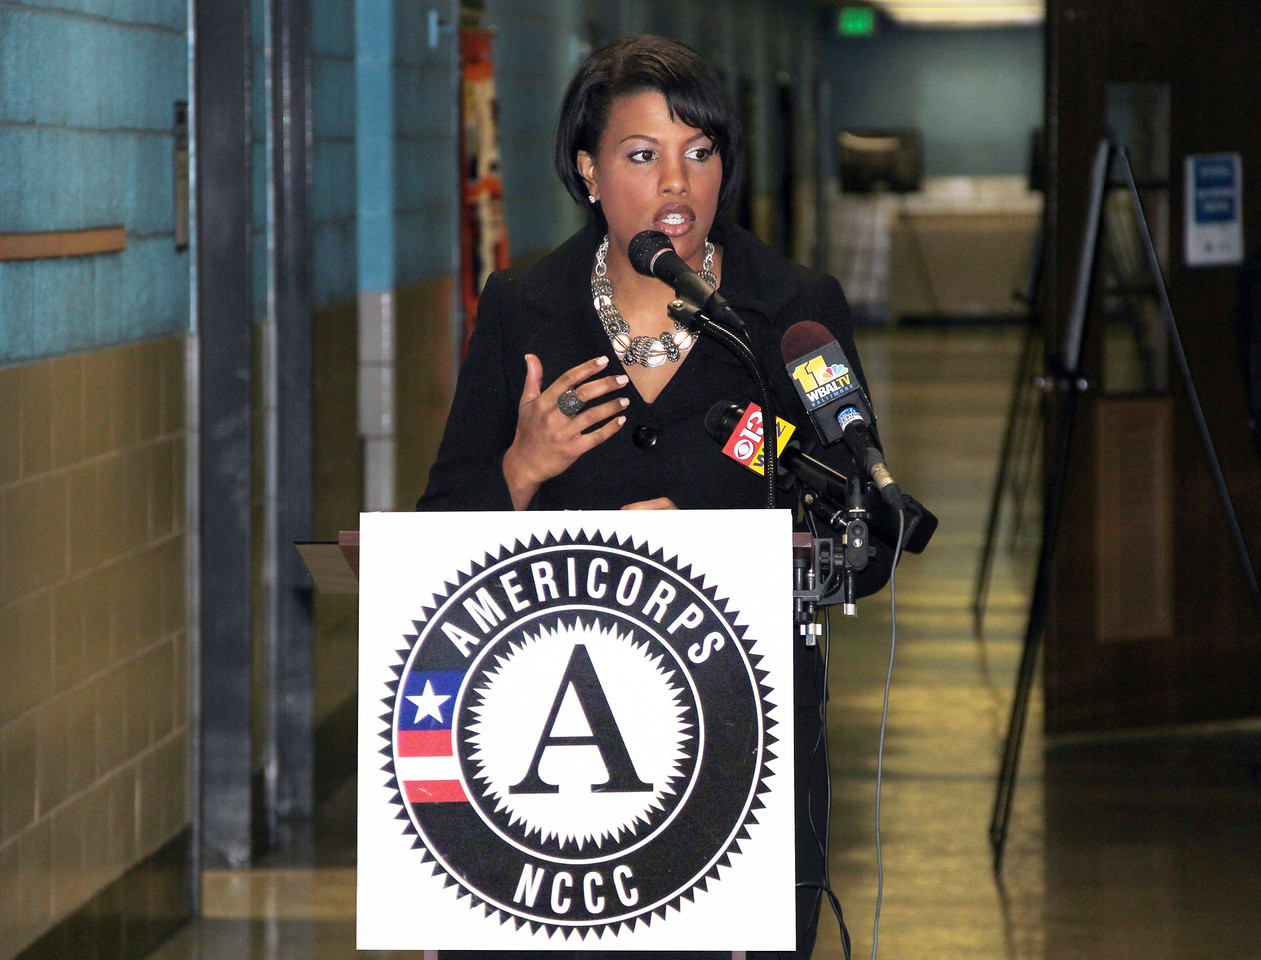 Baltimore Mayor Stephanie Rawlings-Blake addresses community members and attendees at the dedication of the future home of the AmeriCorps NCCC Atlantic Region Campus in Baltimore, MD. Corporation for National and Community Service Photo.